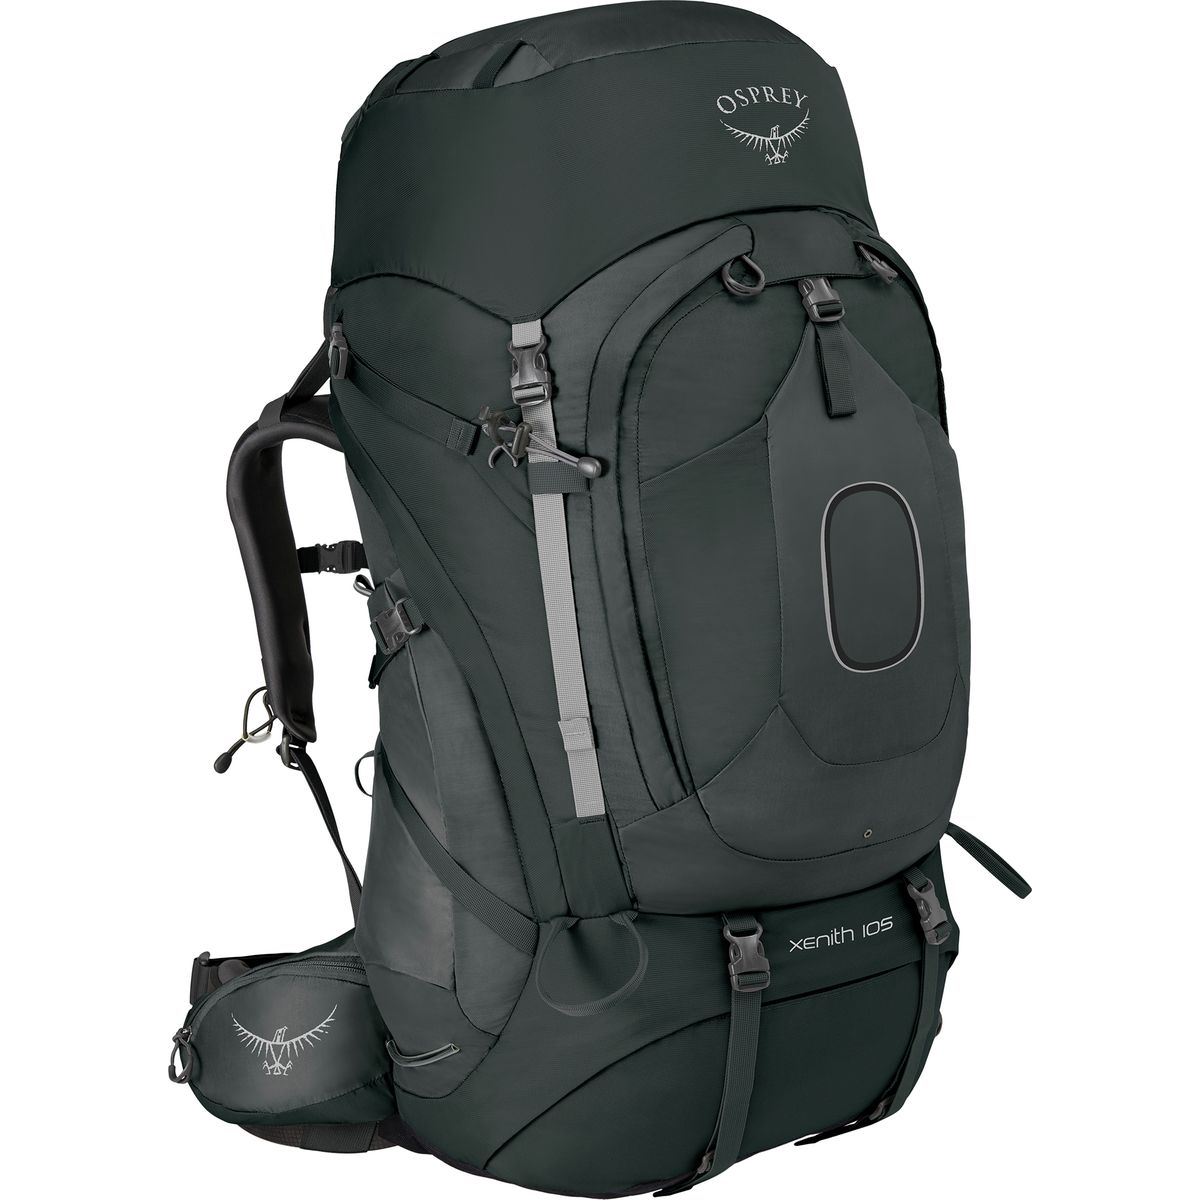 photo: Osprey Xenith 105 expedition pack (70l+)